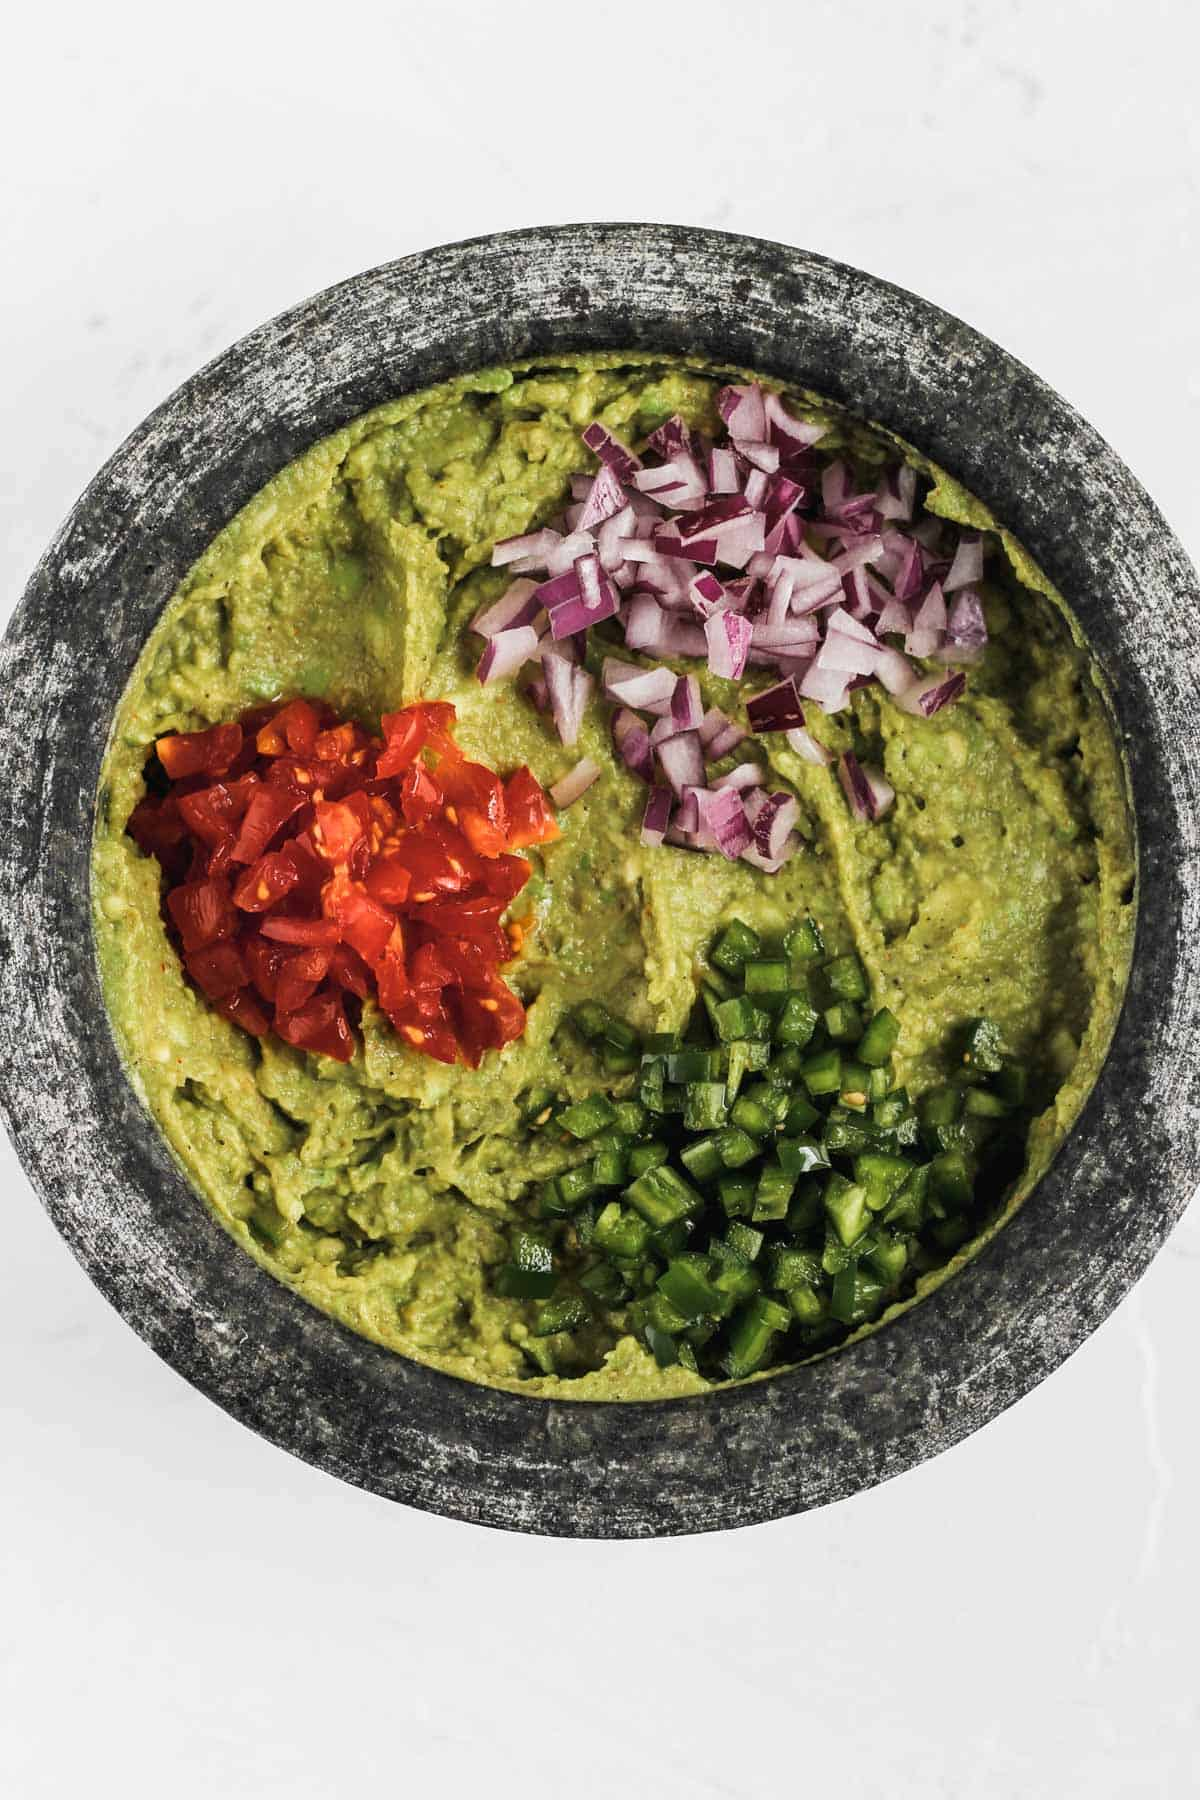 Tomatoes, red onions, and jalapeños on top of mashed avocados.